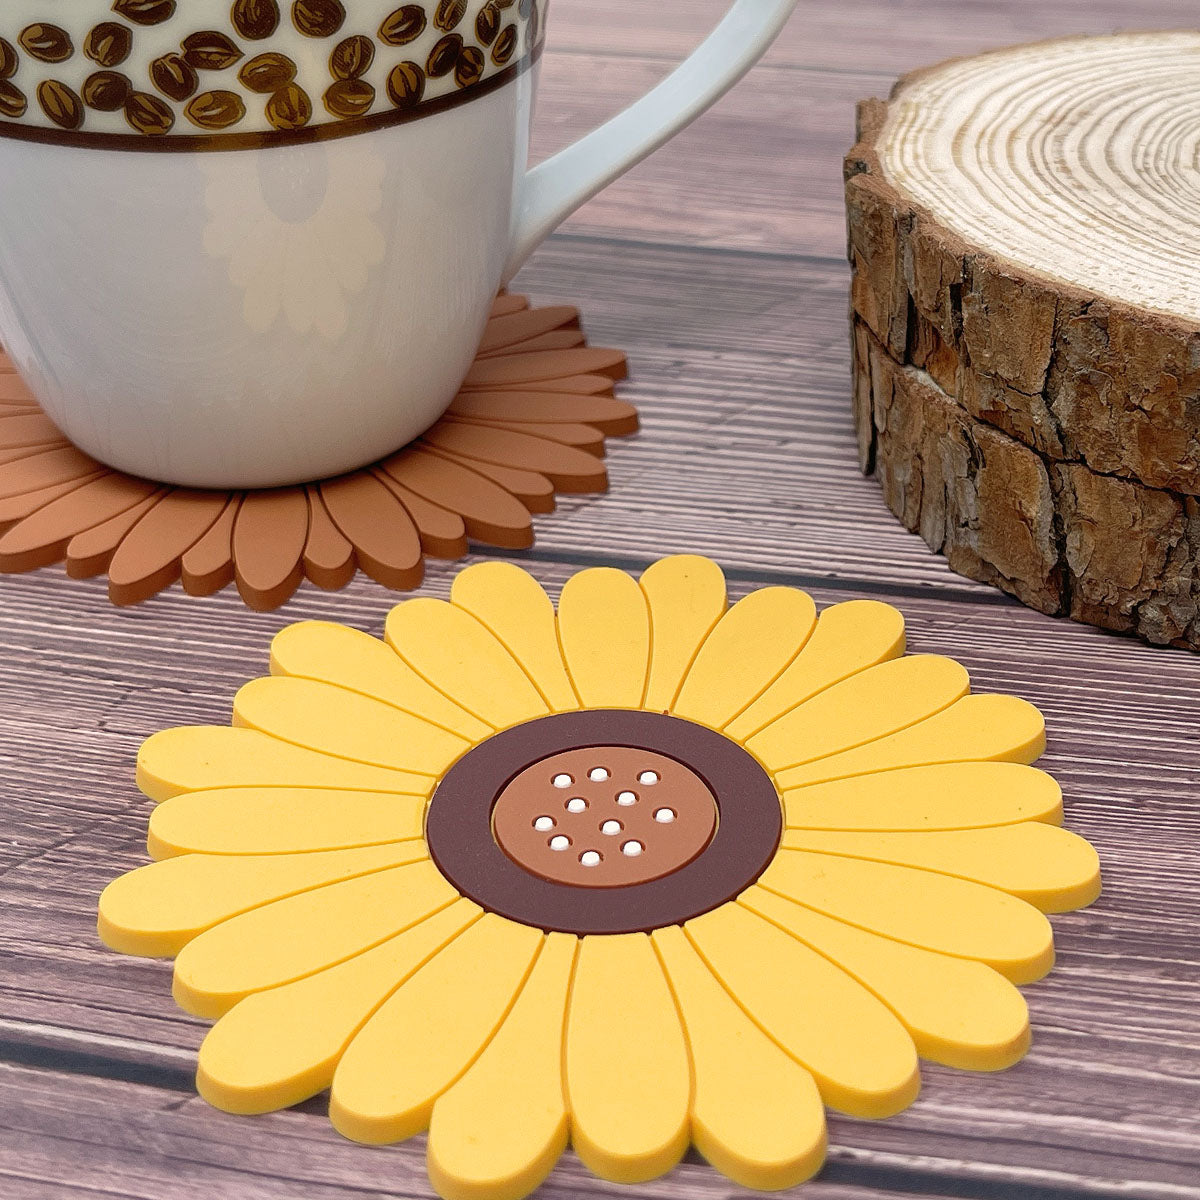 Wrapables Sunflower Coasters for Cups and Drinks (Set of 2)